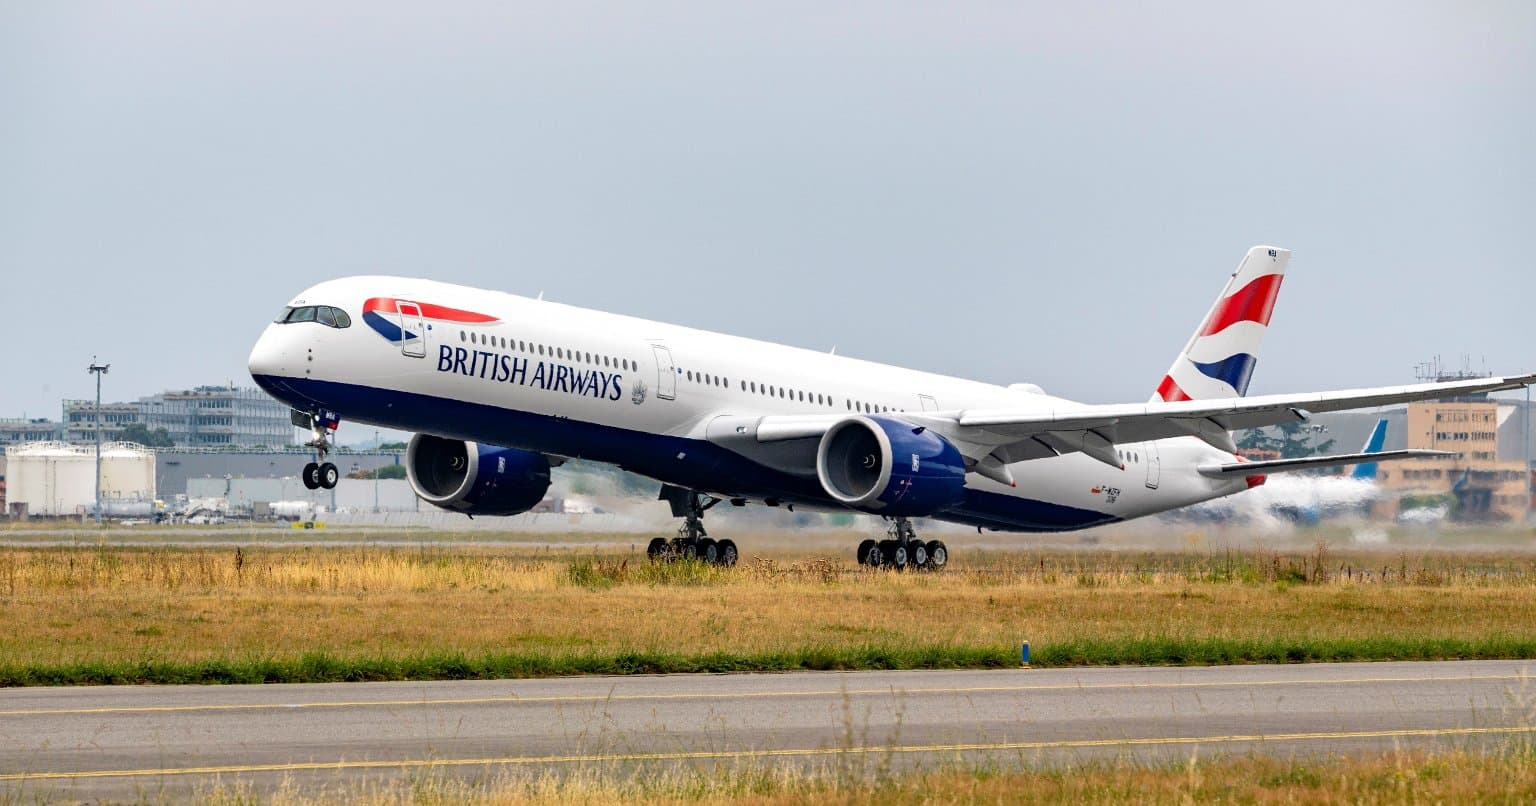 British Airways plane on runway with front wheels lifting off